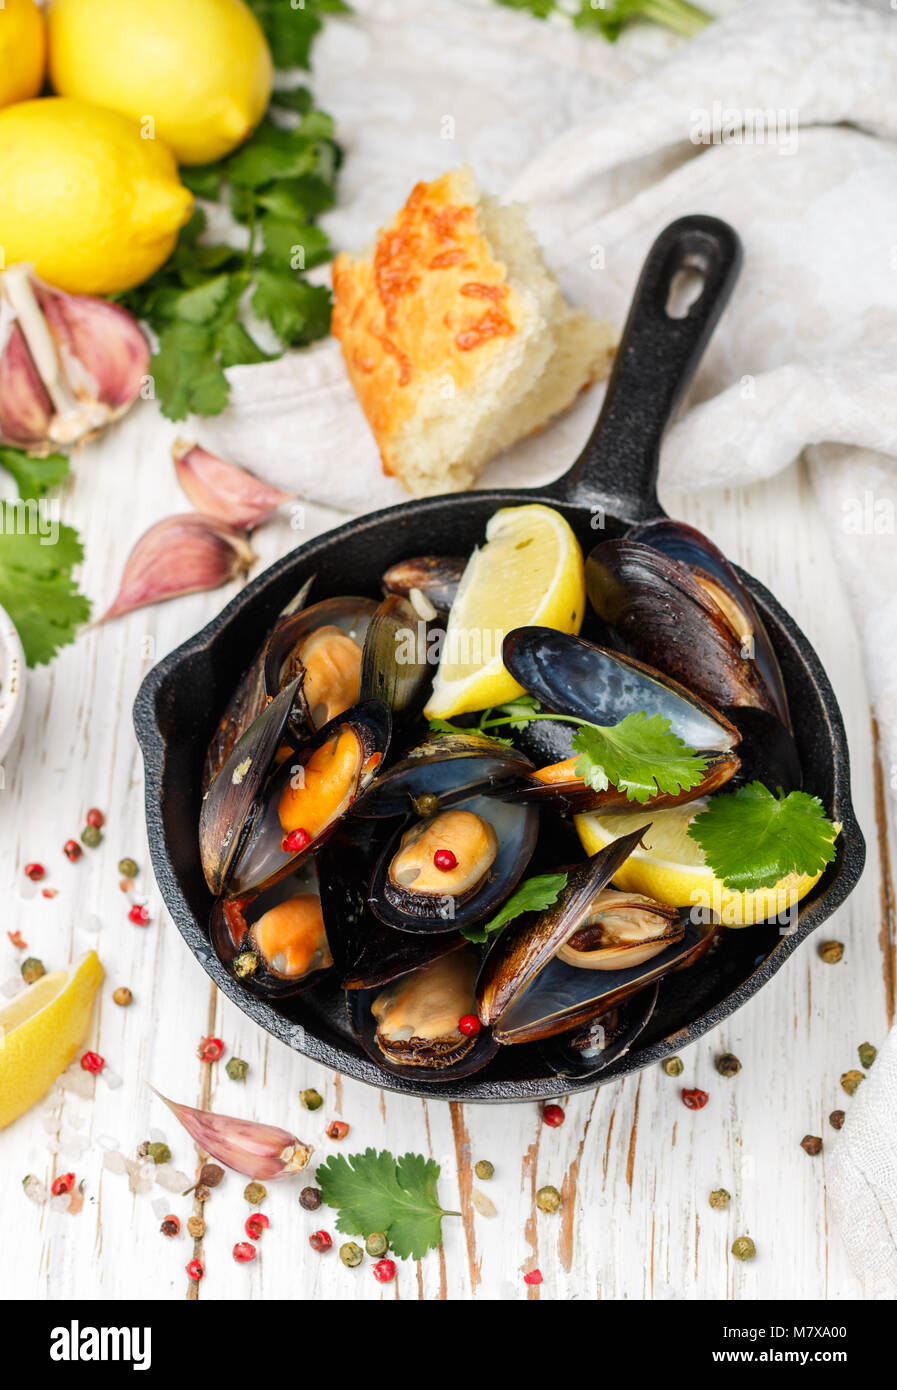 Delicious mussels in white wine with lemon, garlic, herbs and spices in a cast iron skillet . Baguette, Cilantro - Stock Image